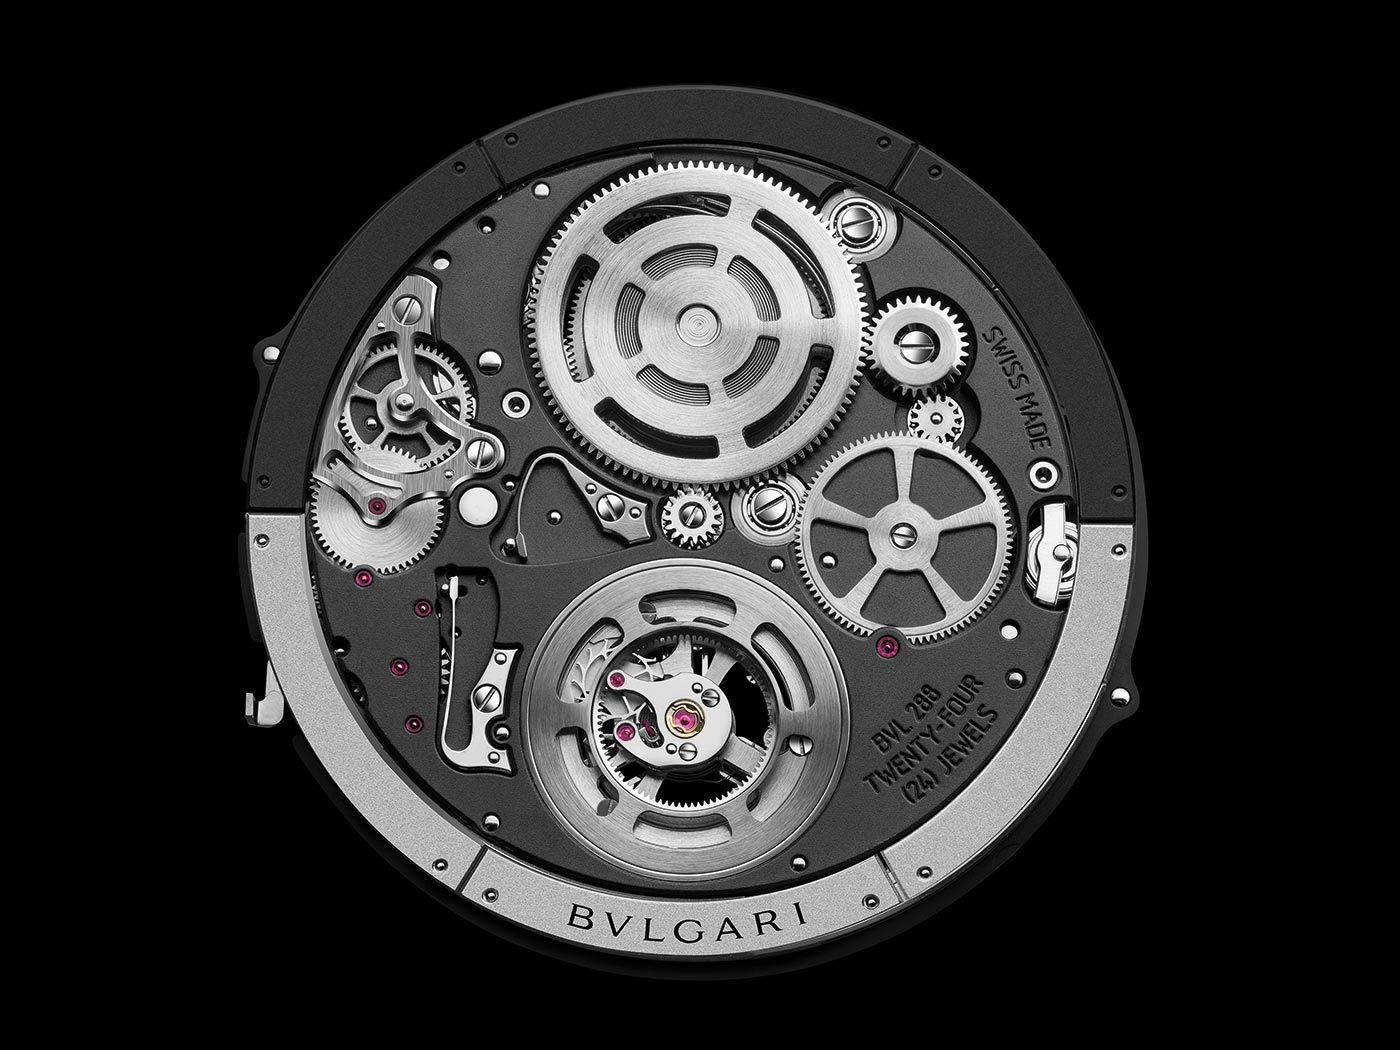 bulgari-octo-finissimo-thinnest-automatic-watch-2018-3.jpg